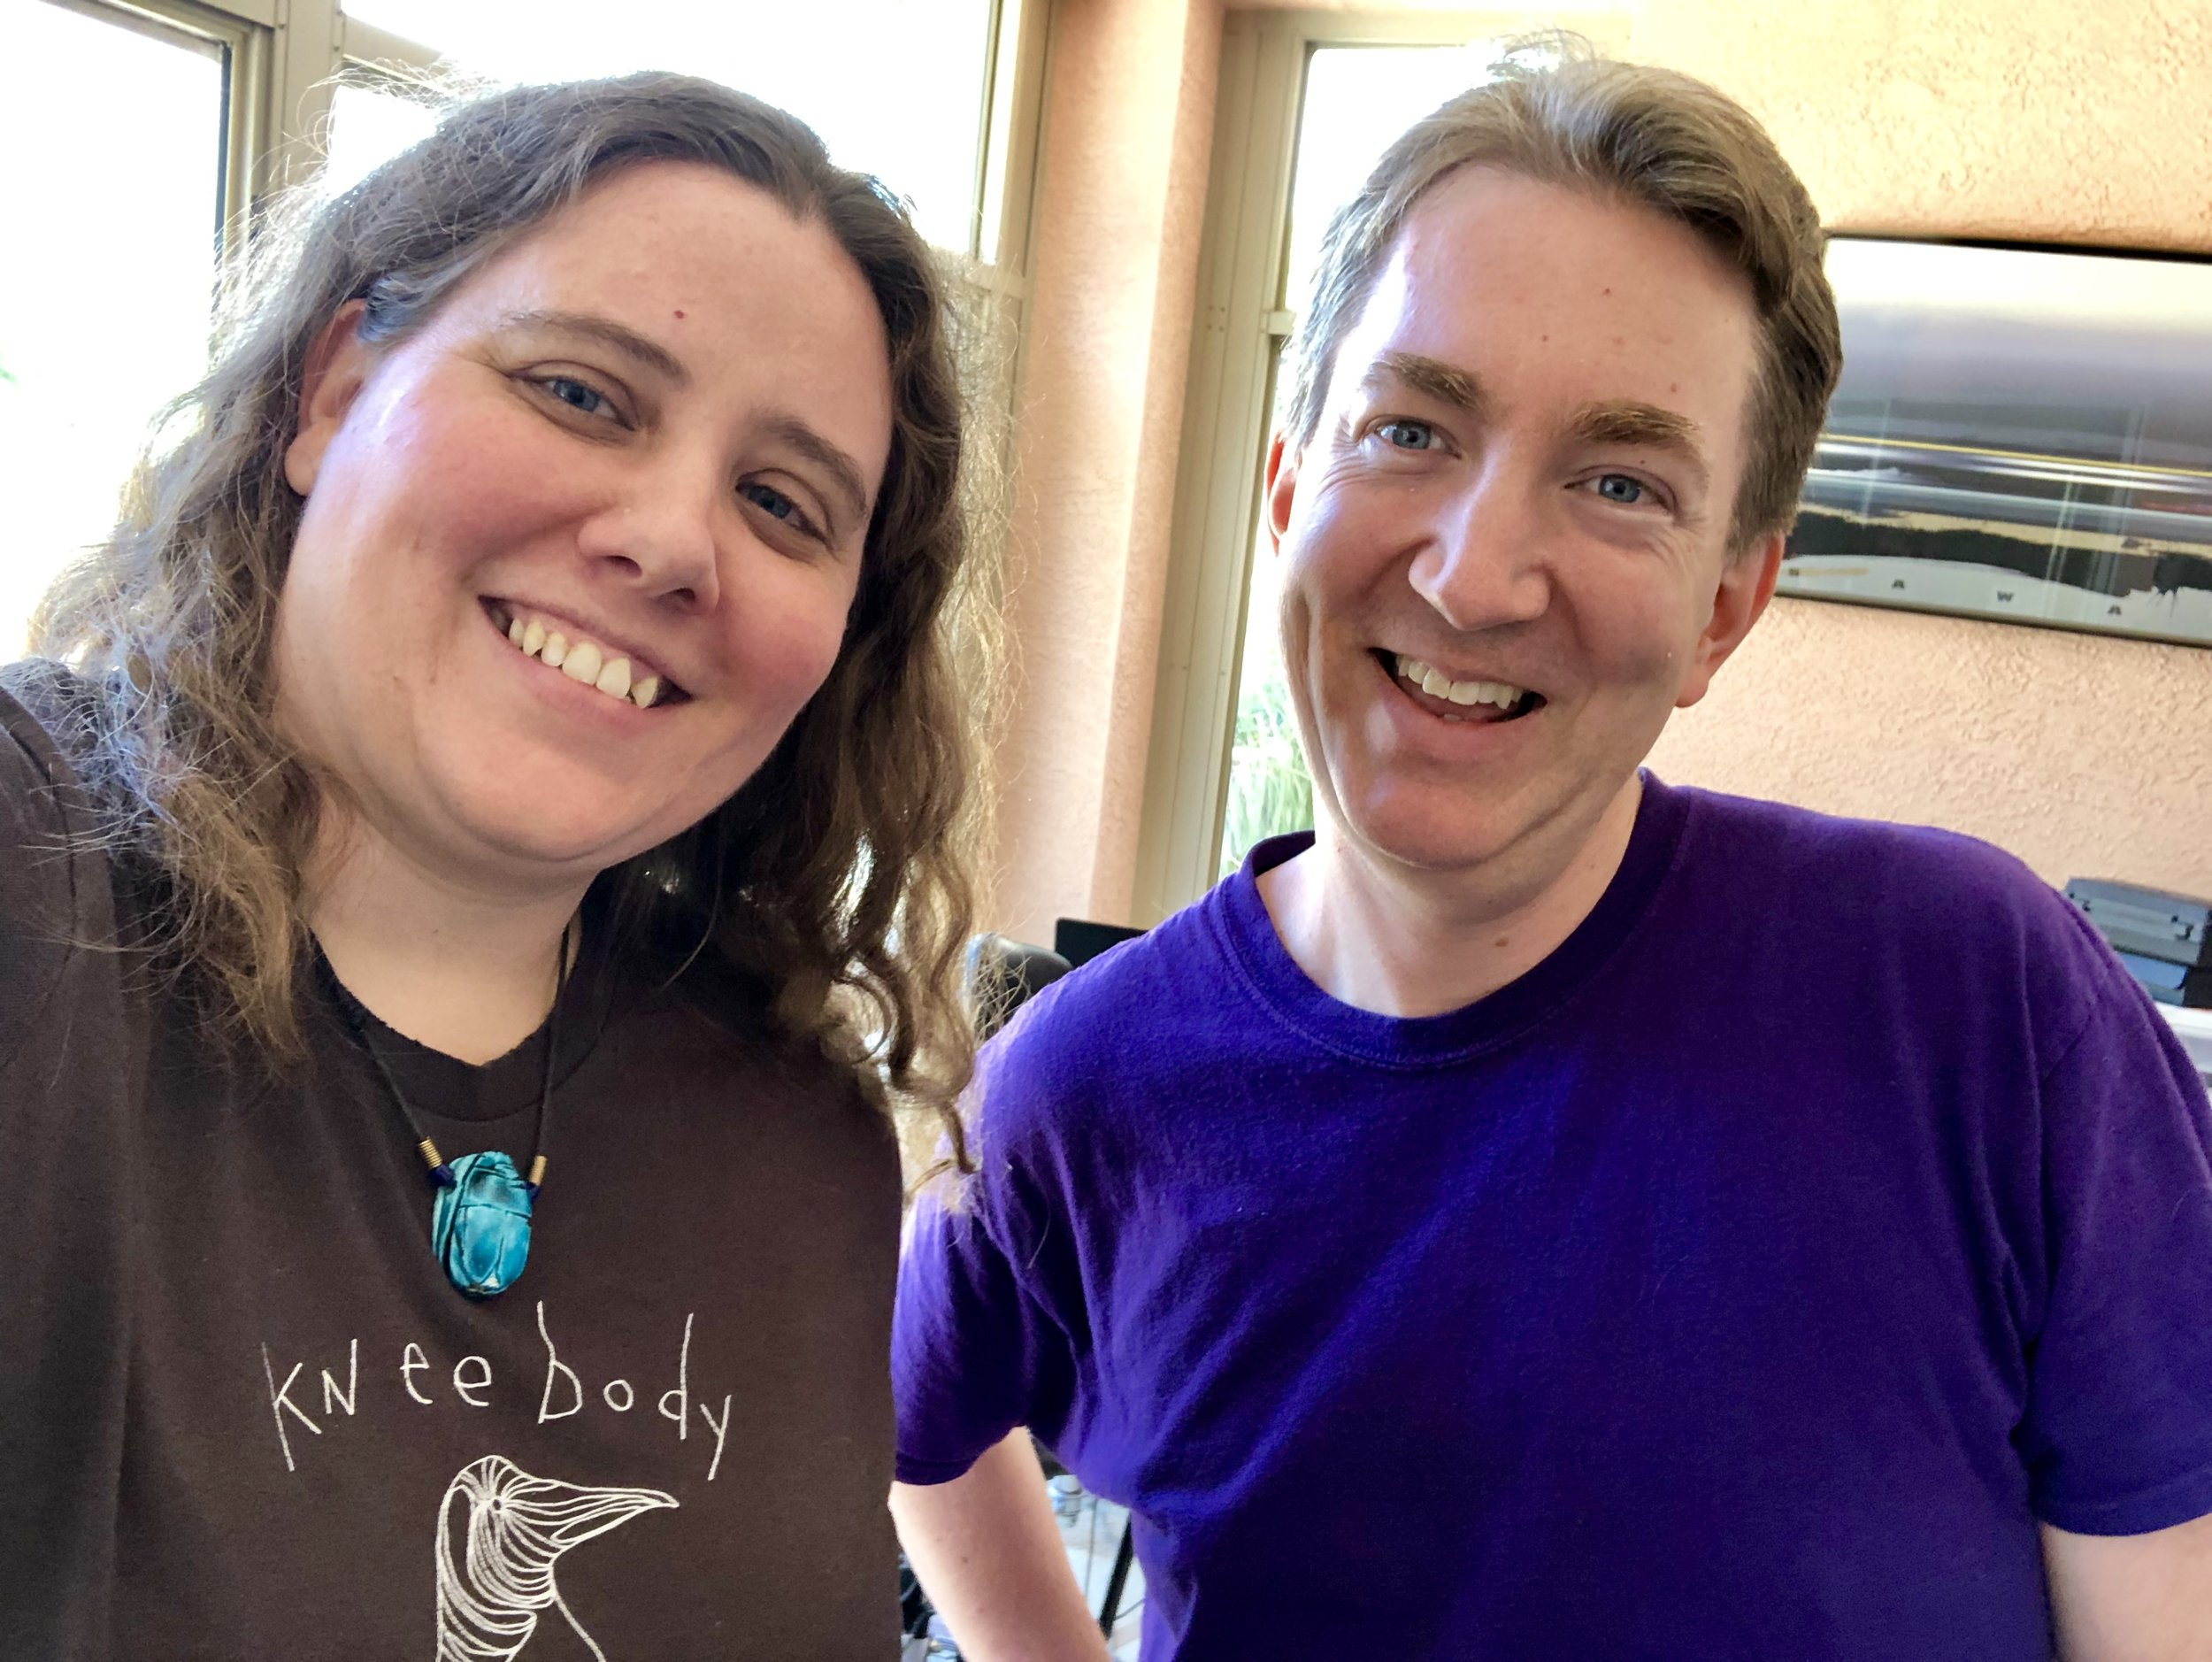 Monica and Colin have been playing music together for over a decade and share a love and curiosity for music and musicians from around the world!